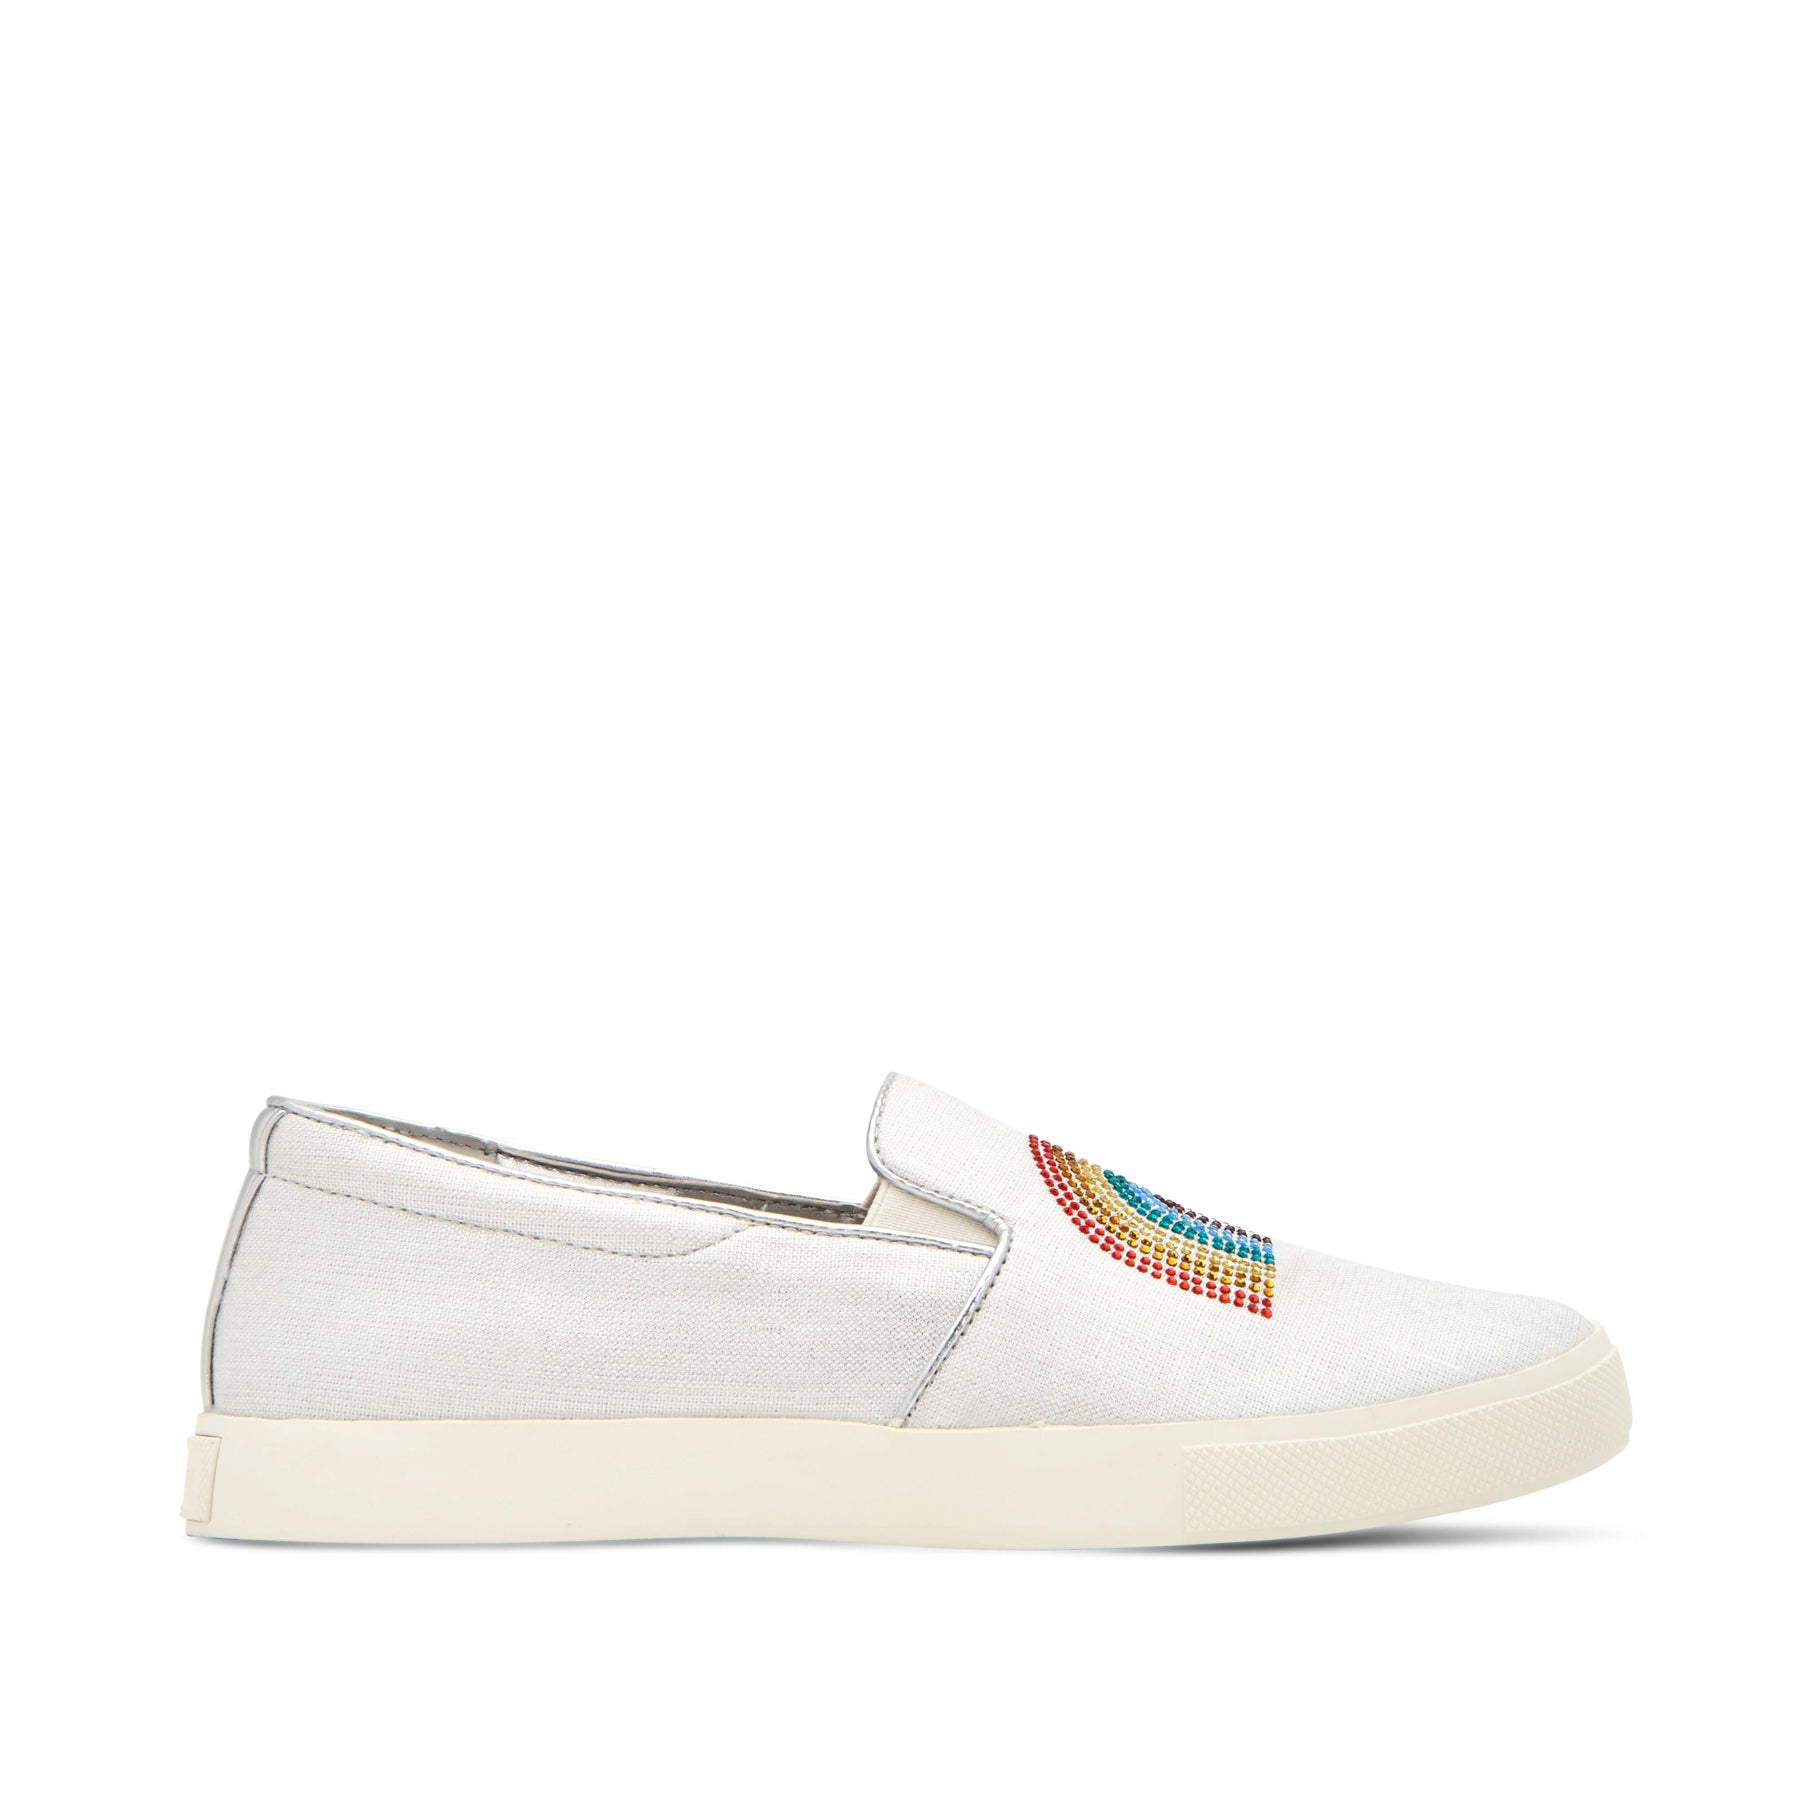 katy perry slip-on sneaker in rainbow size 5 | the kerry